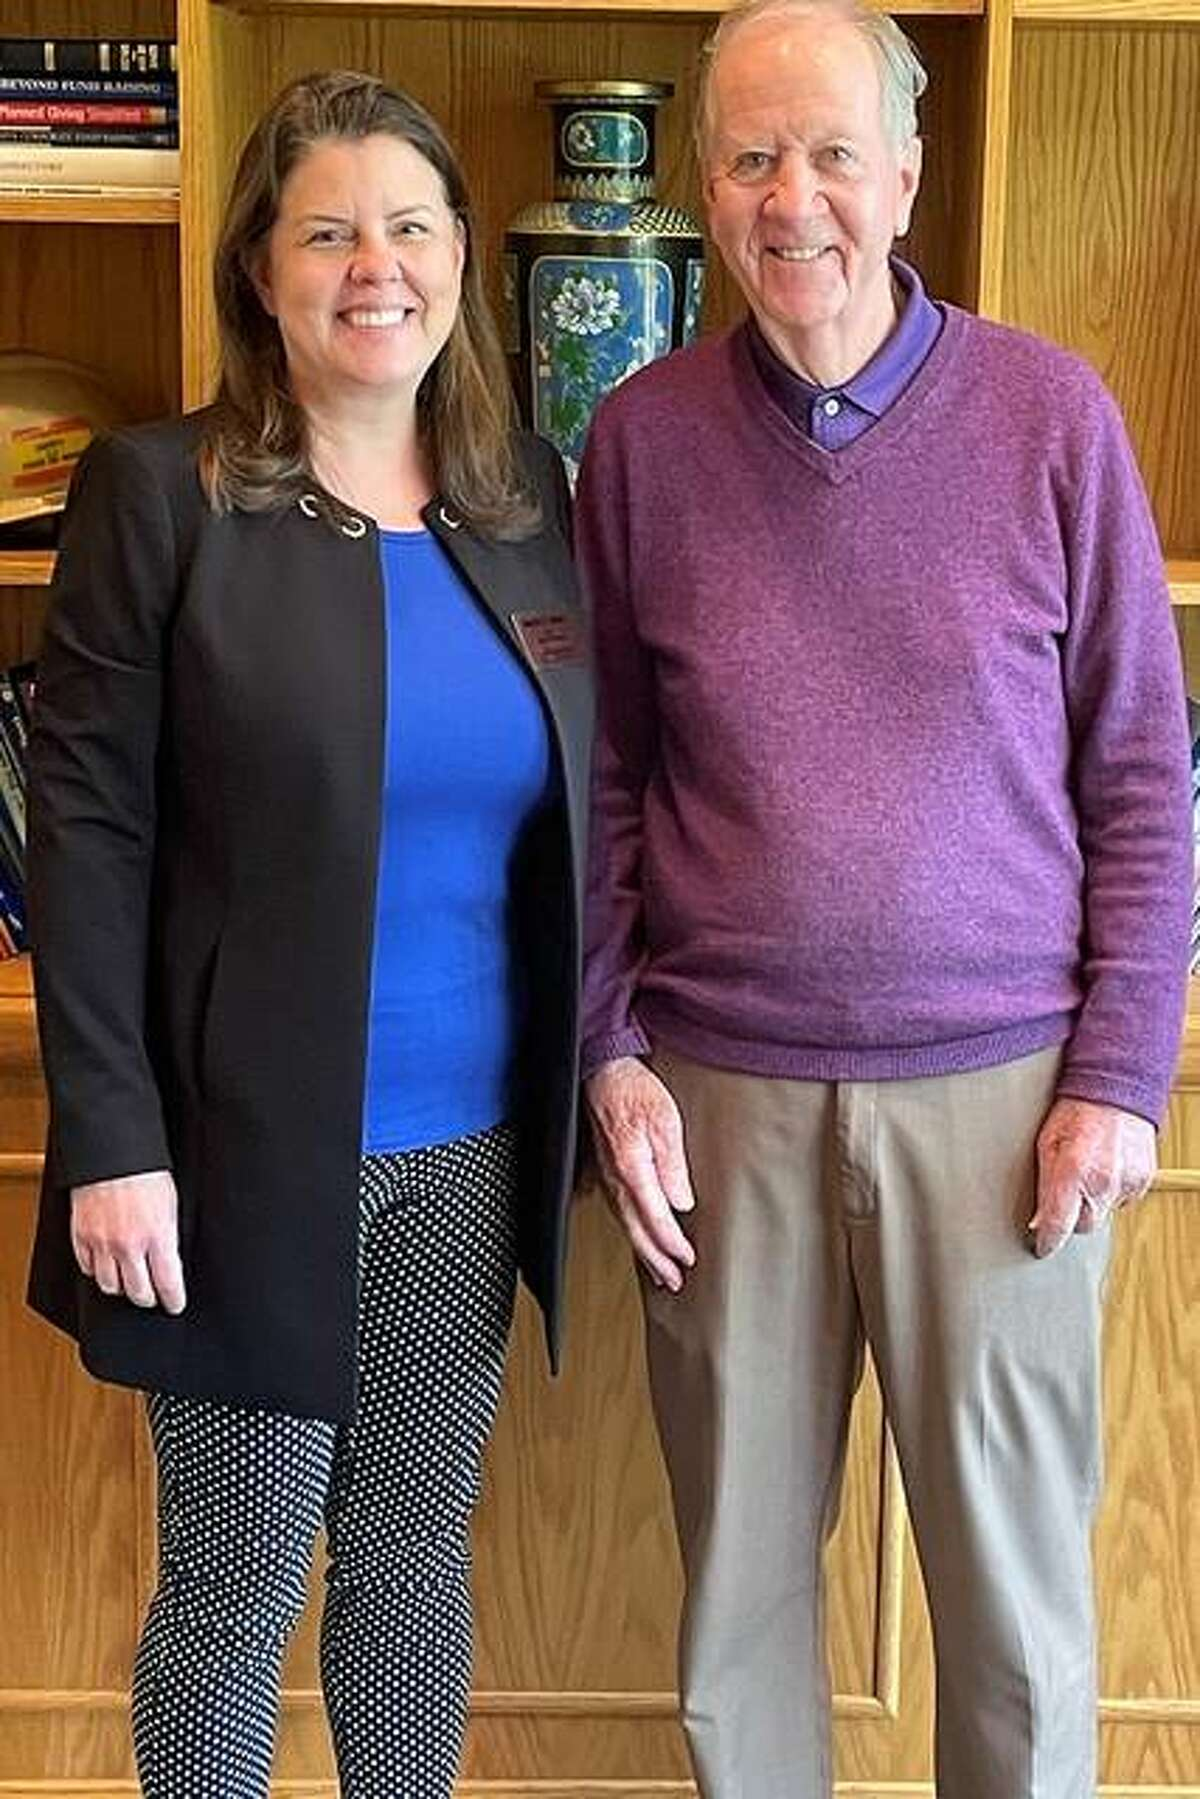 Rachel Stack, vice chancellor for University Advancement at Southern Illinois University Edwardsville, is shown with Jim McPike. Jim and Julie McPike have created a scholarship endowment at SIUE with an initial gift of $432,000 to support students in STEM.